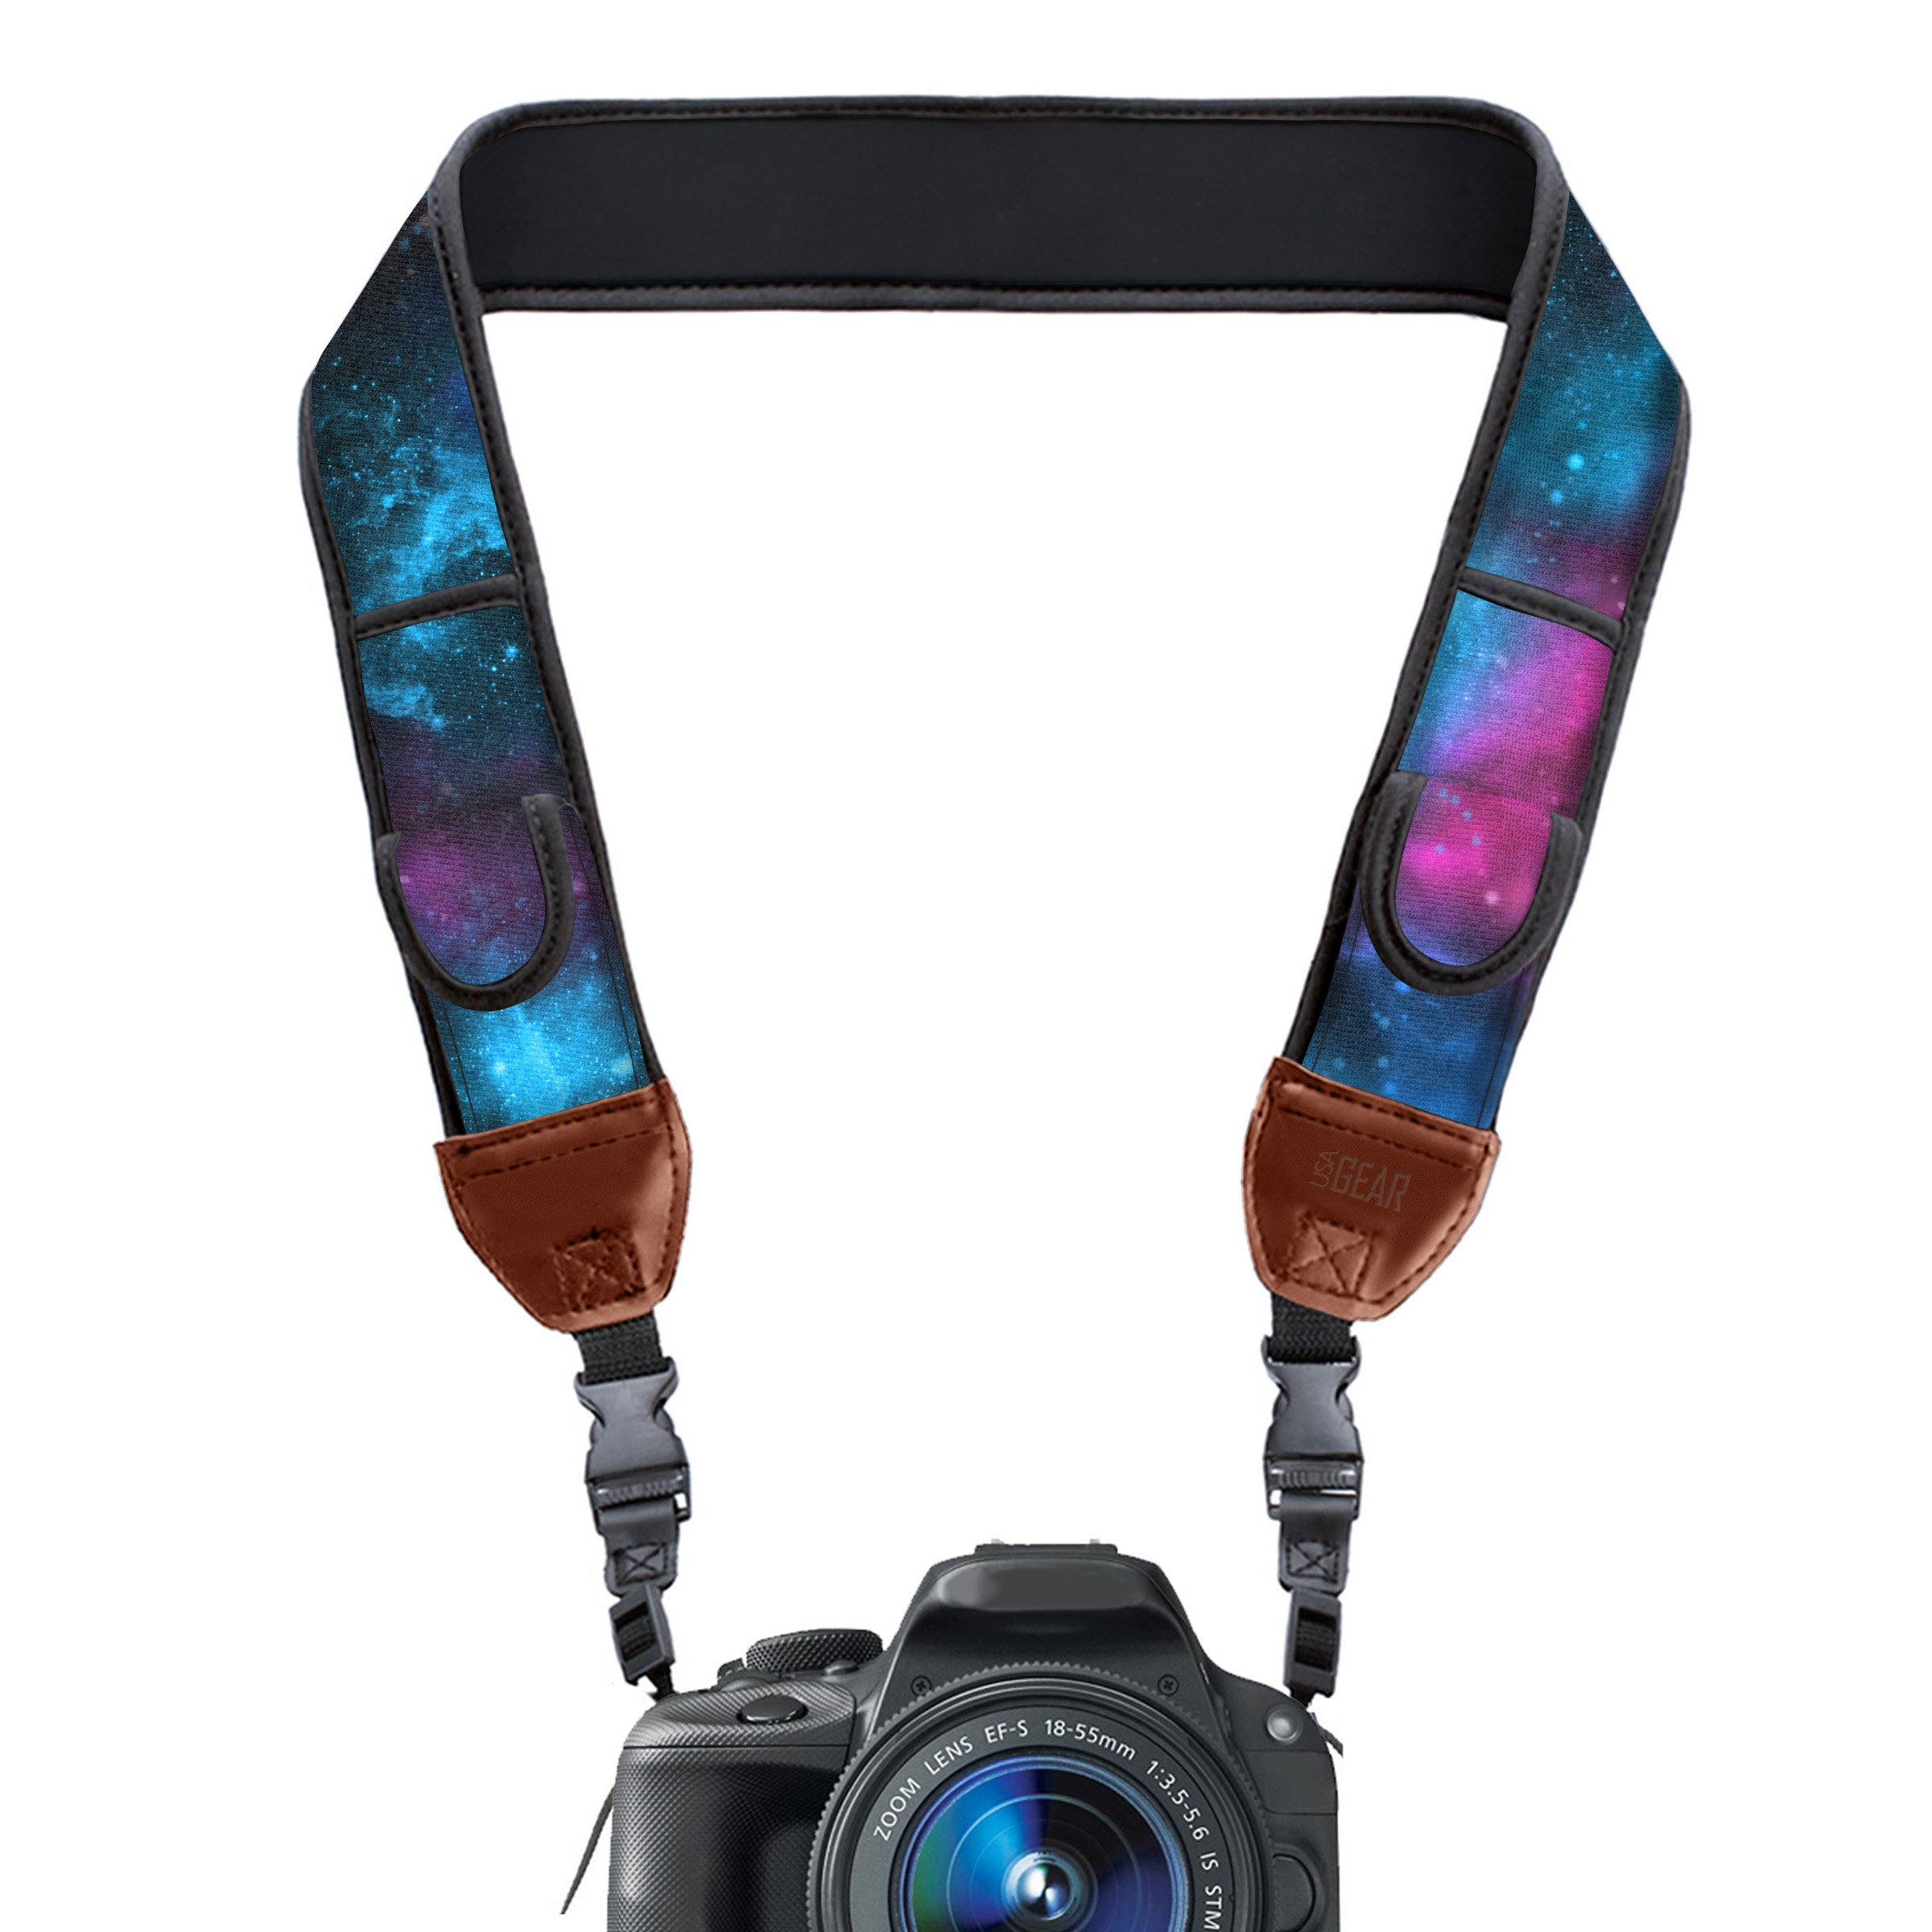 TrueSHOT Camera Strap with Galaxy Neoprene Pattern and Accessory Storage Pockets by USA Gear - Works With Canon, Fujifilm, Nikon, Sony and More DSLR, Mirrorless, Instant Cameras